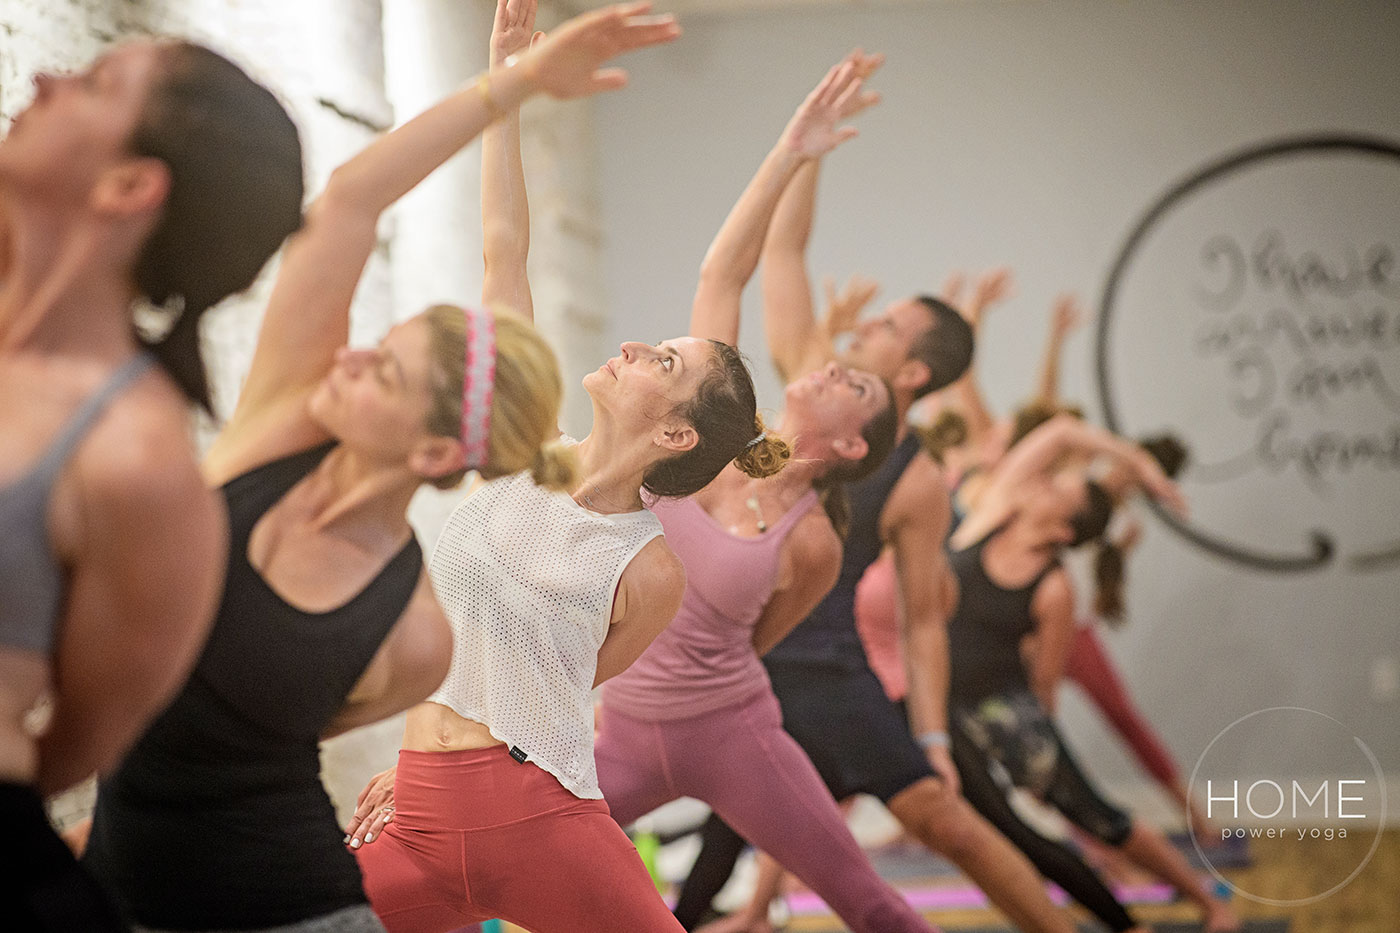 The first class at Home Power Yoga